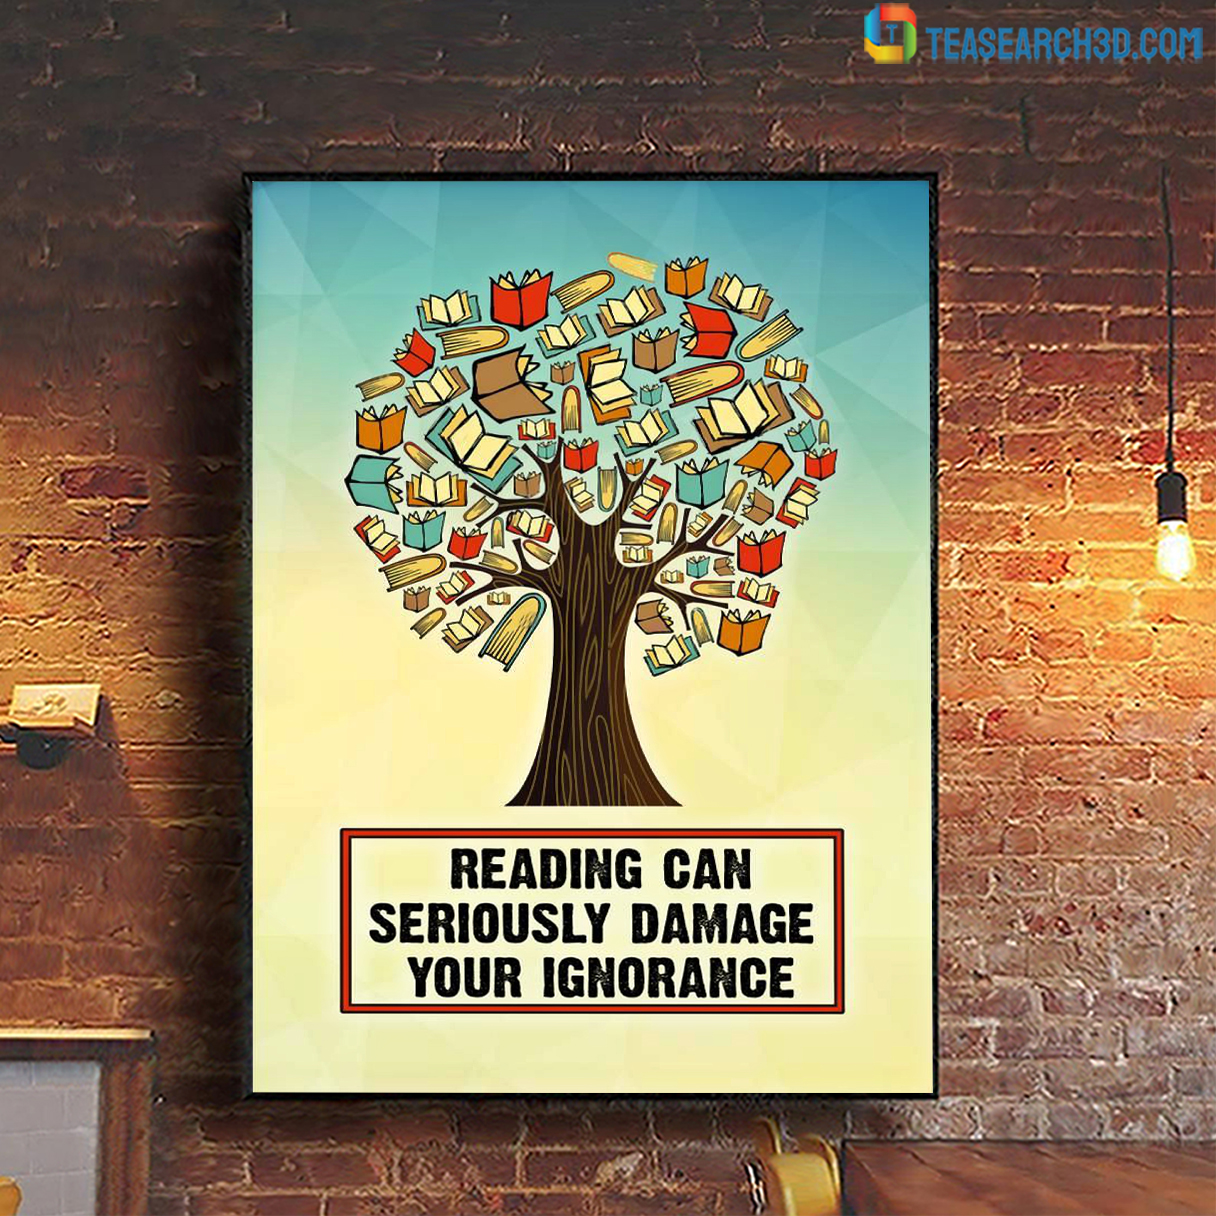 Reading can seriously damage your ignorance poster